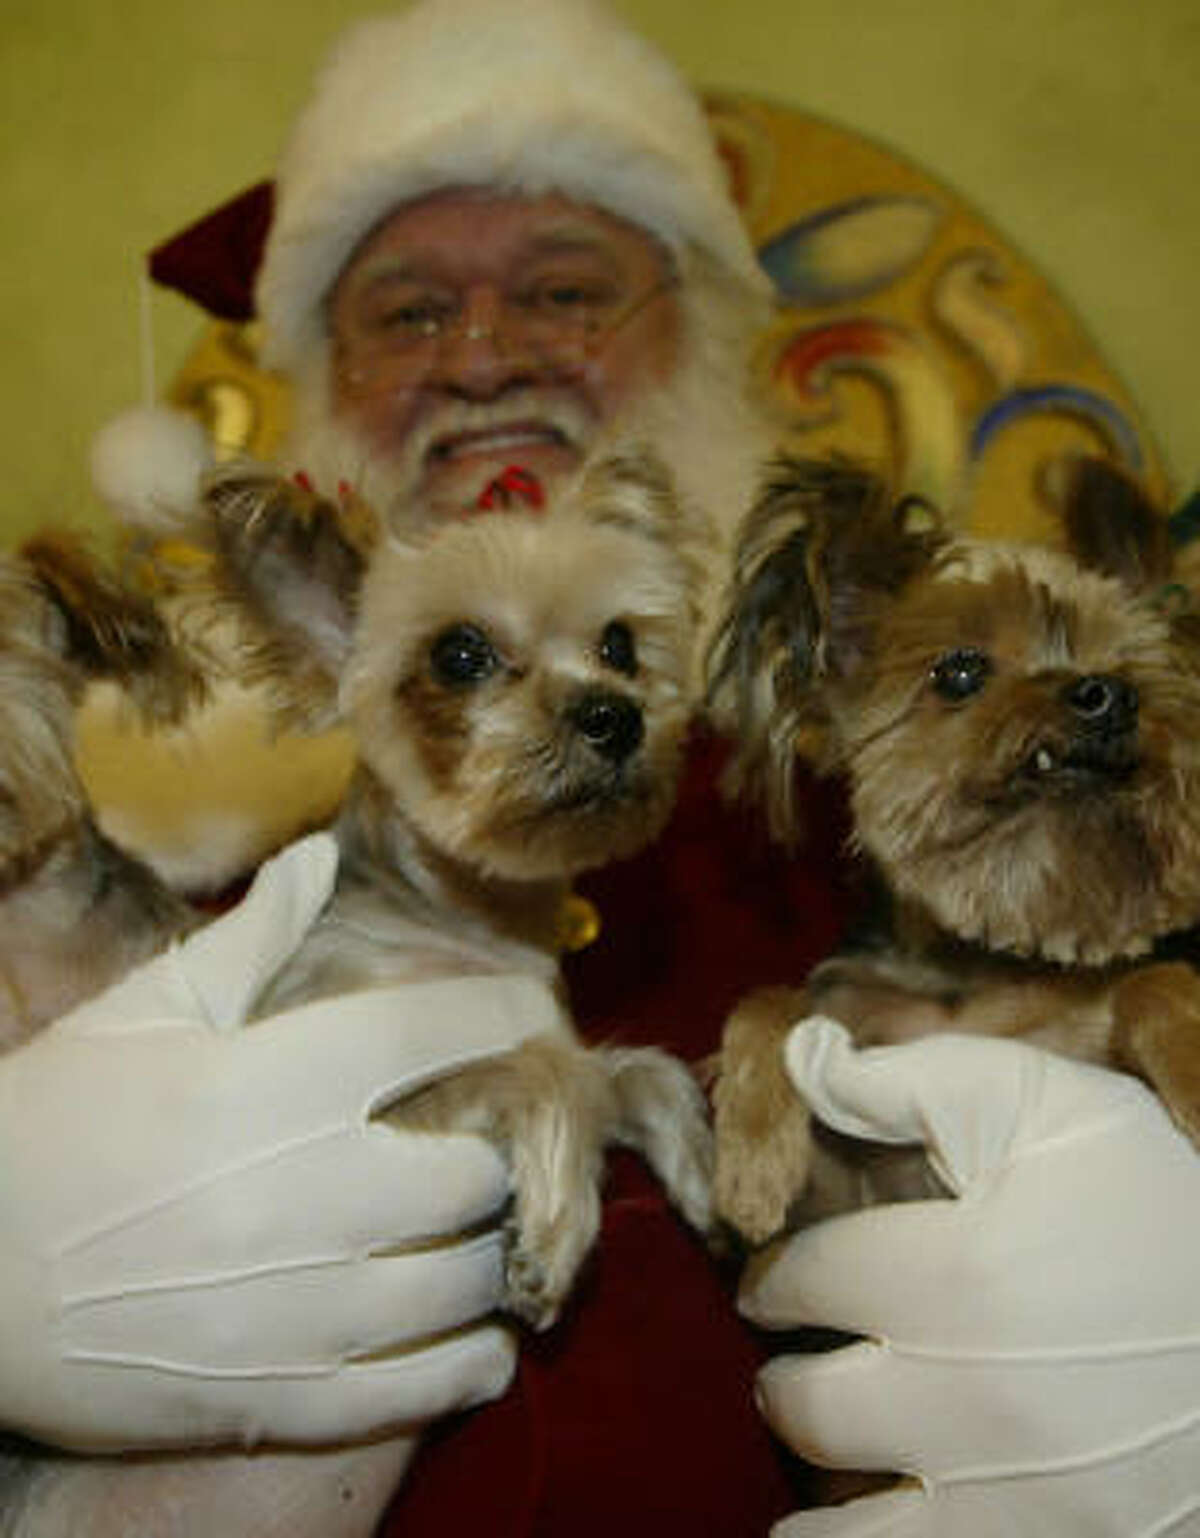 John Tobey helped these terriers with their holiday wishes in 2008 at the Galleria.